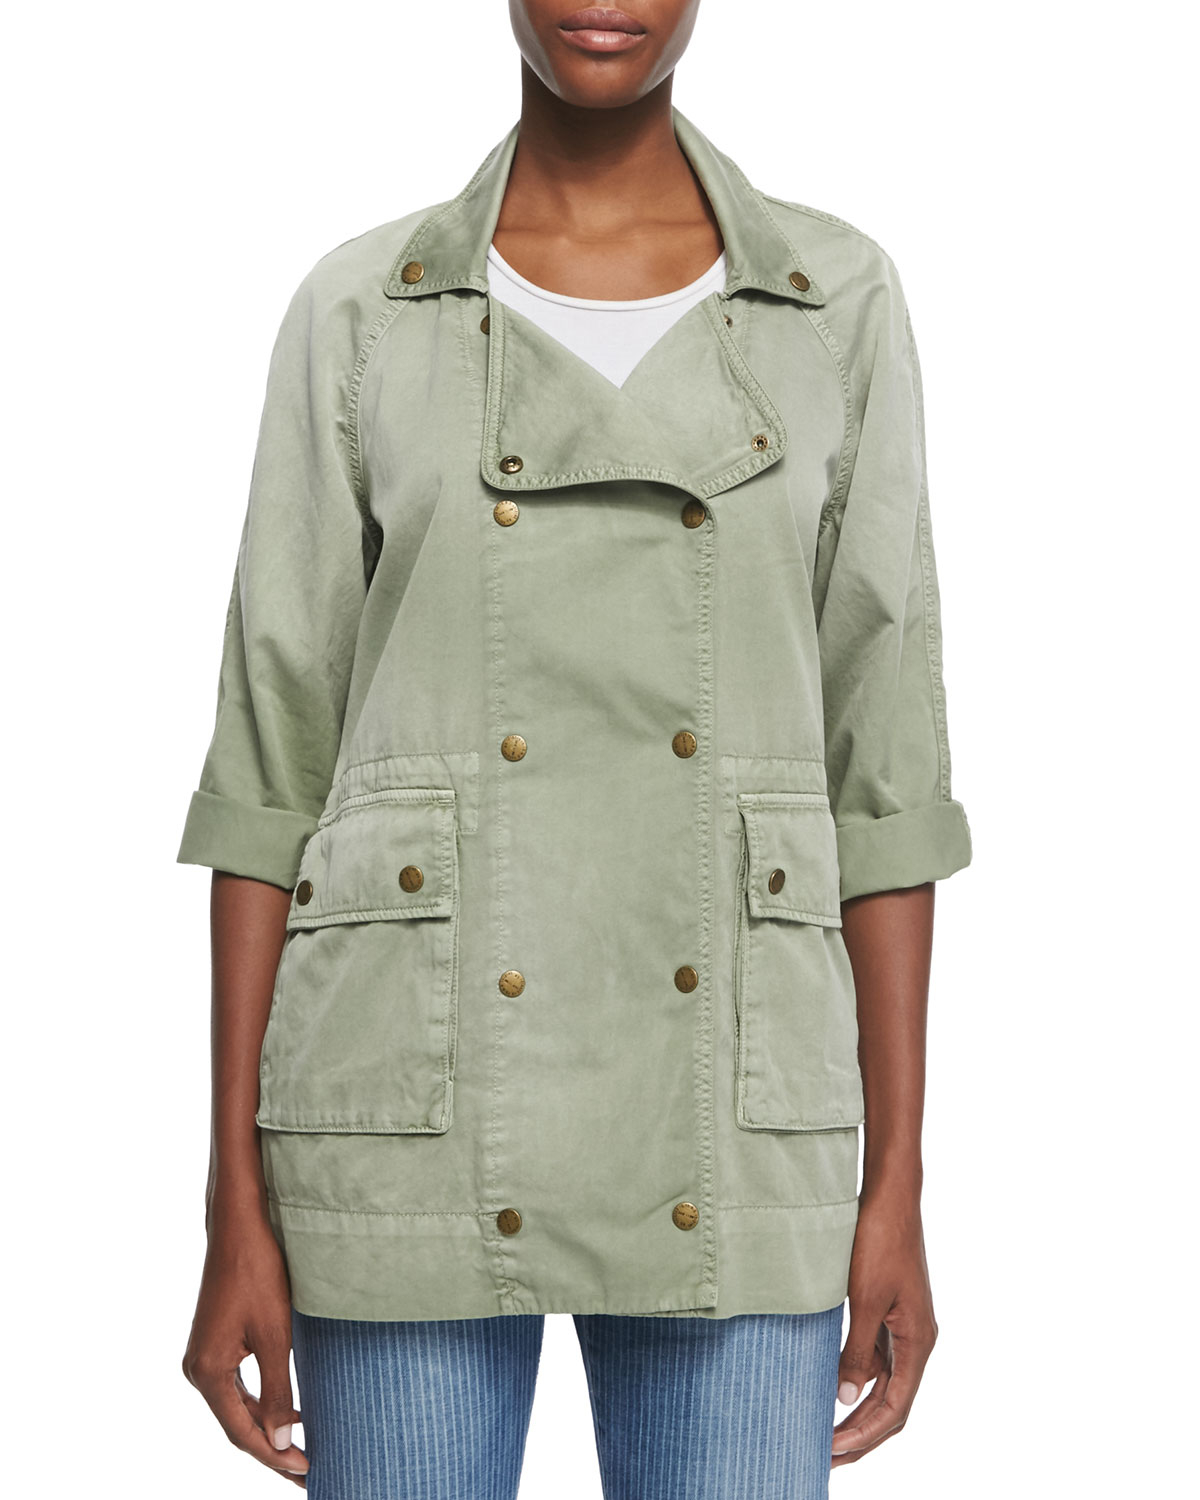 Free Shipping Recommend Current/Elliott Denim Double-Breasted Jacket Many Kinds Of Online WF7v4W6FL3